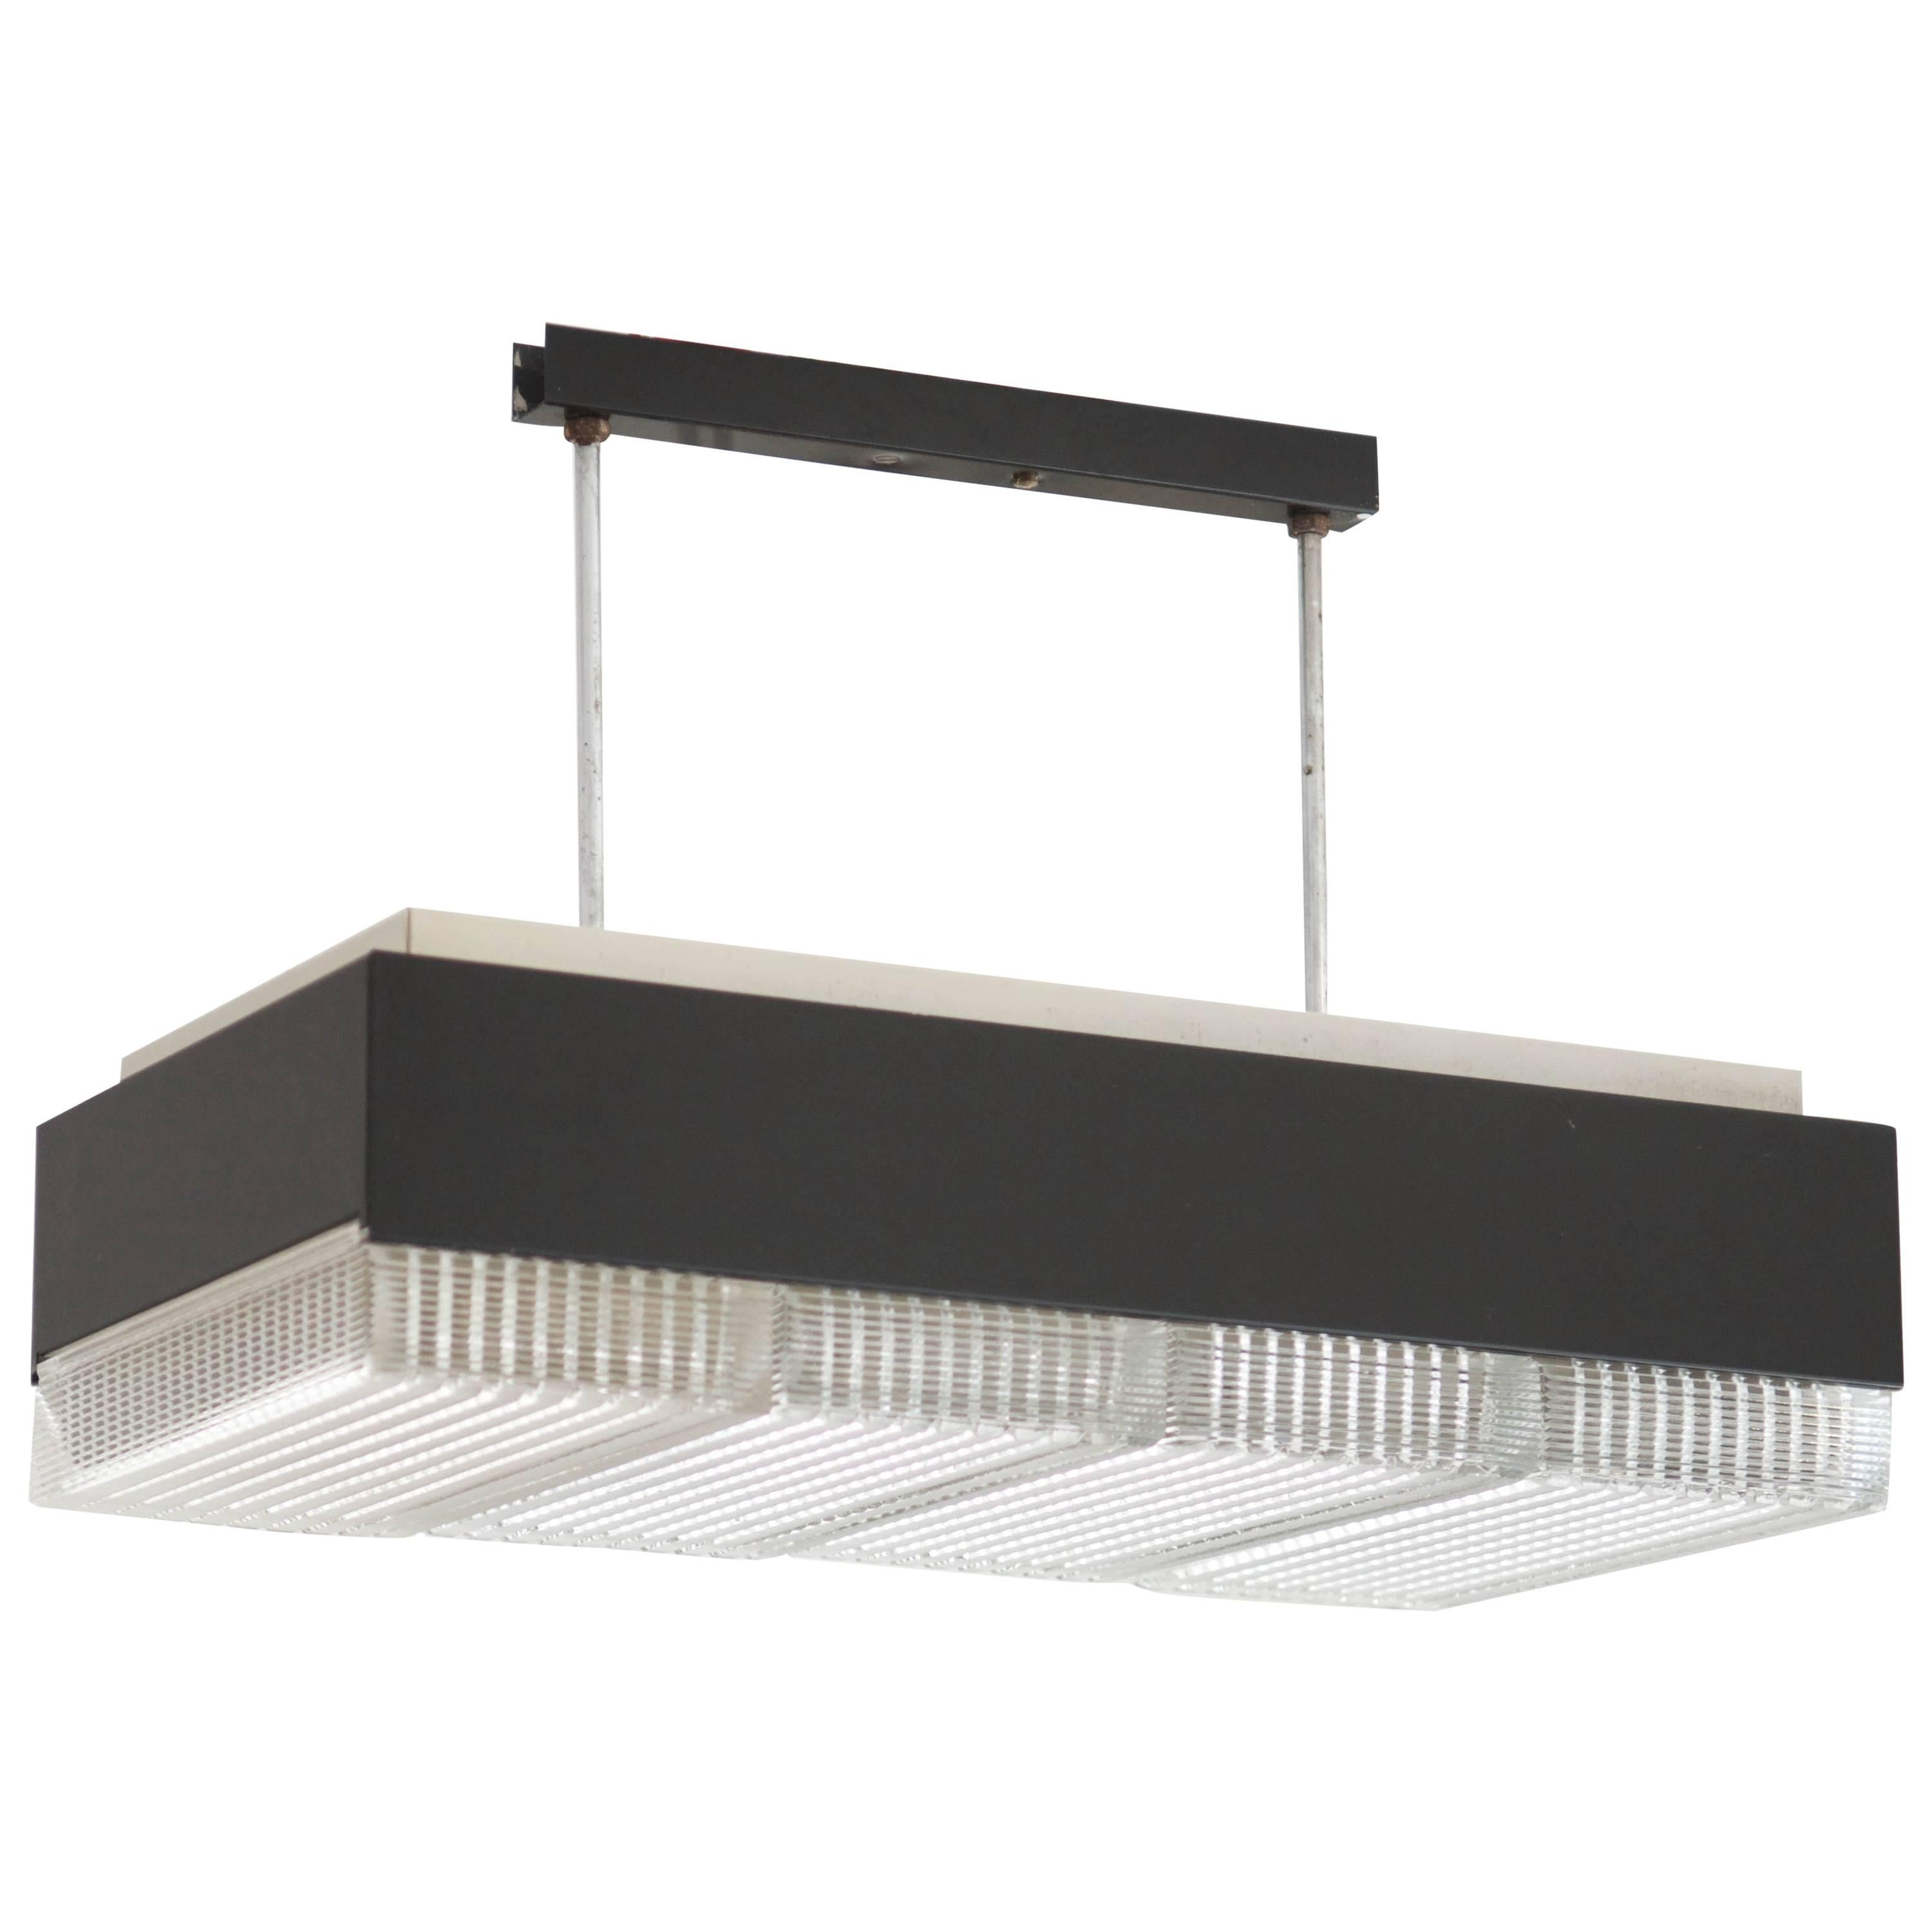 fixture of set black panes lamp iron a exclusive clear rectangle frame our light pin crafted in glass lighting pendant